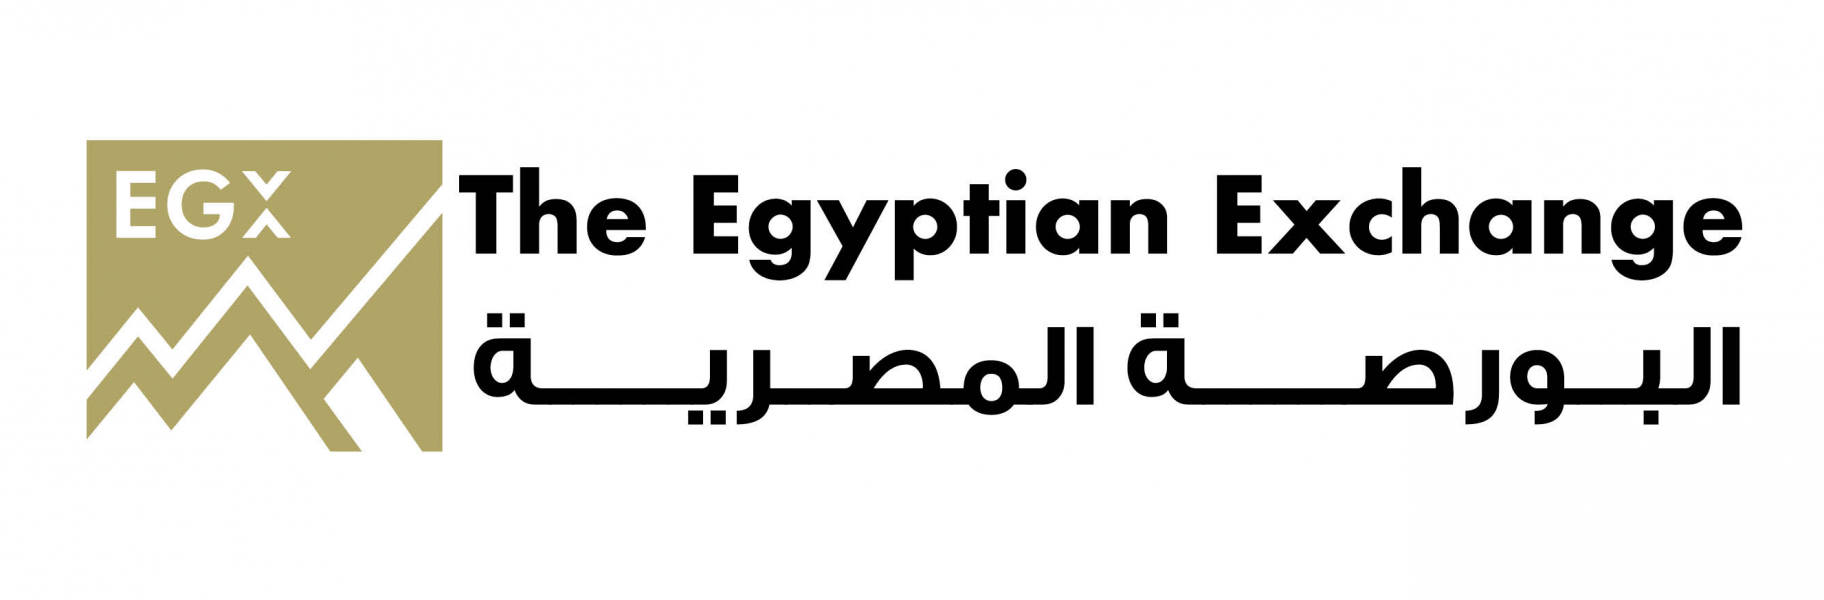 The-Egyptian-Exchange-Amends-its-Coding-System-to